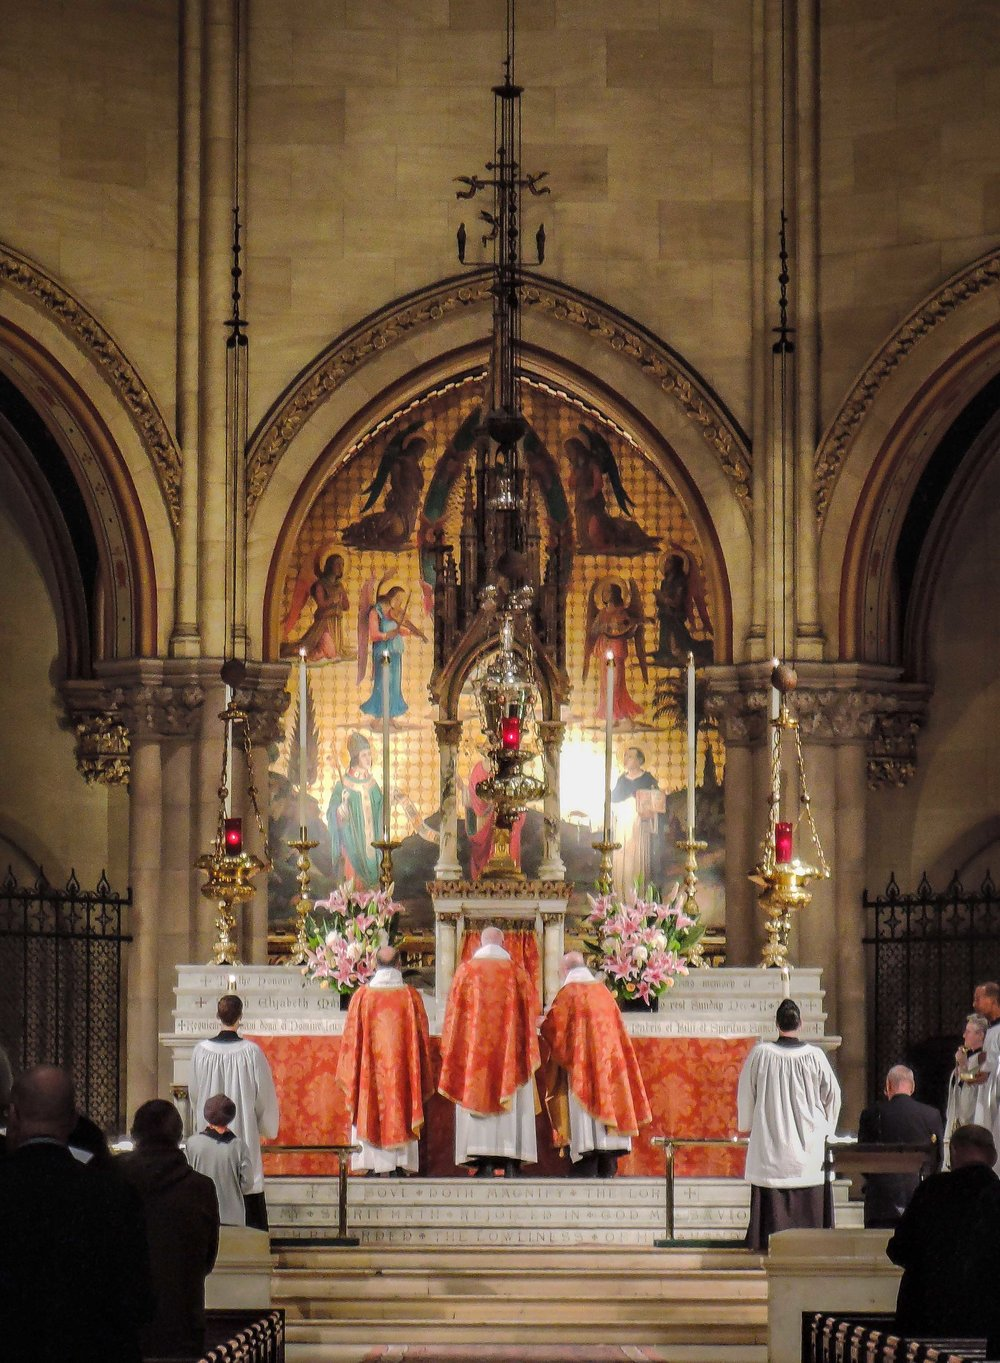 Solemn Mass on Ascension Day at Saint Mary's